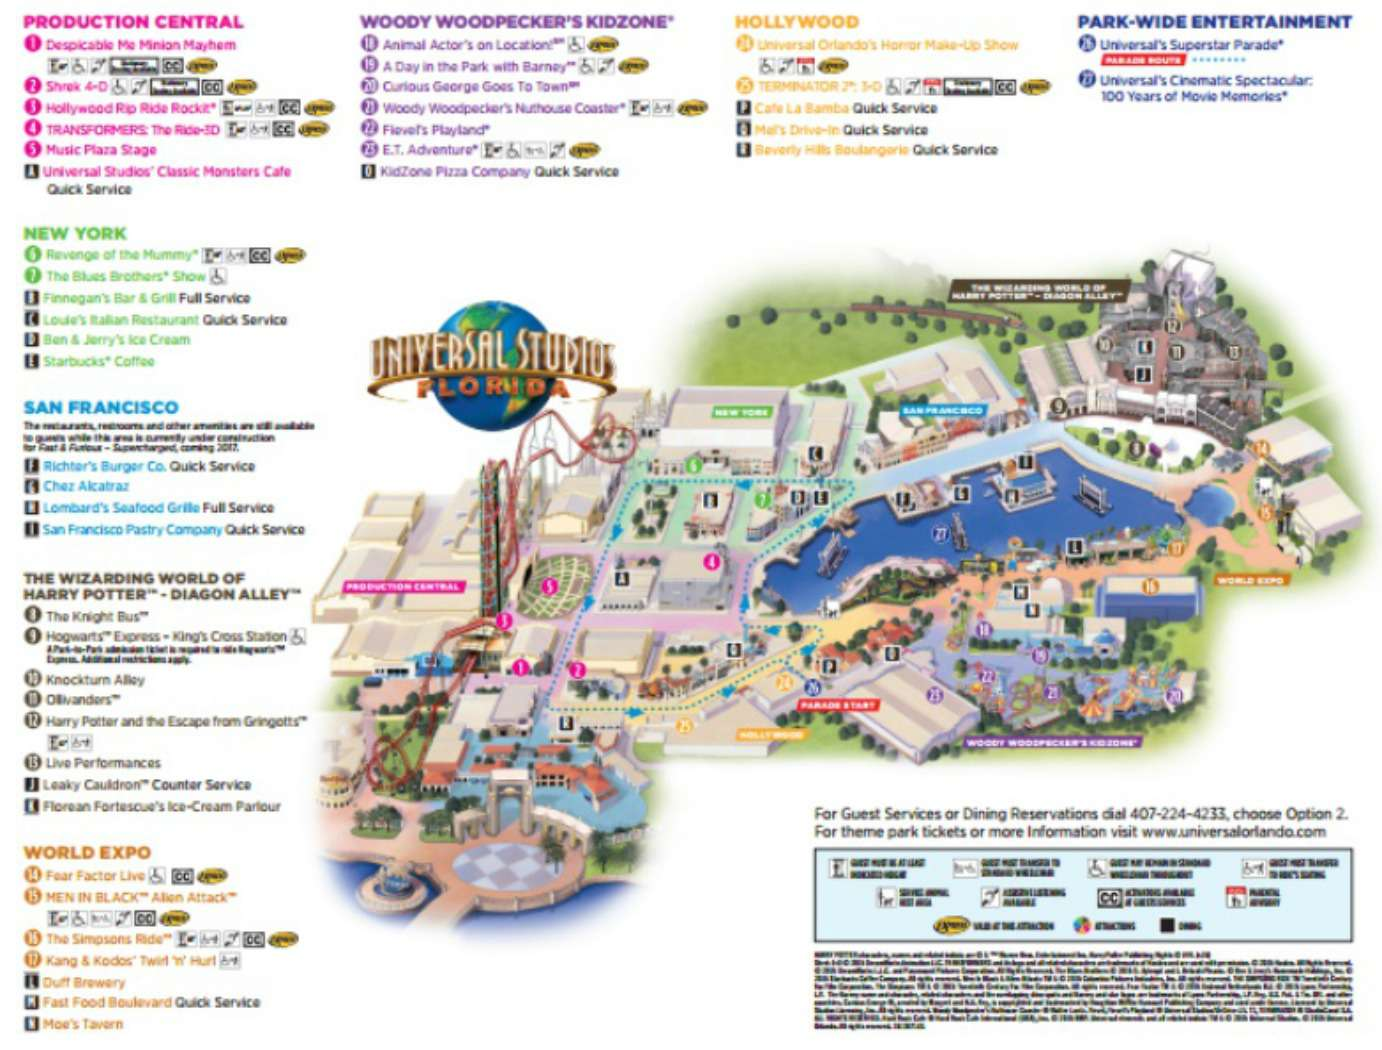 Maps of Universal Orlando Resort's Parks and Hotels Diagon Alley Google Maps on